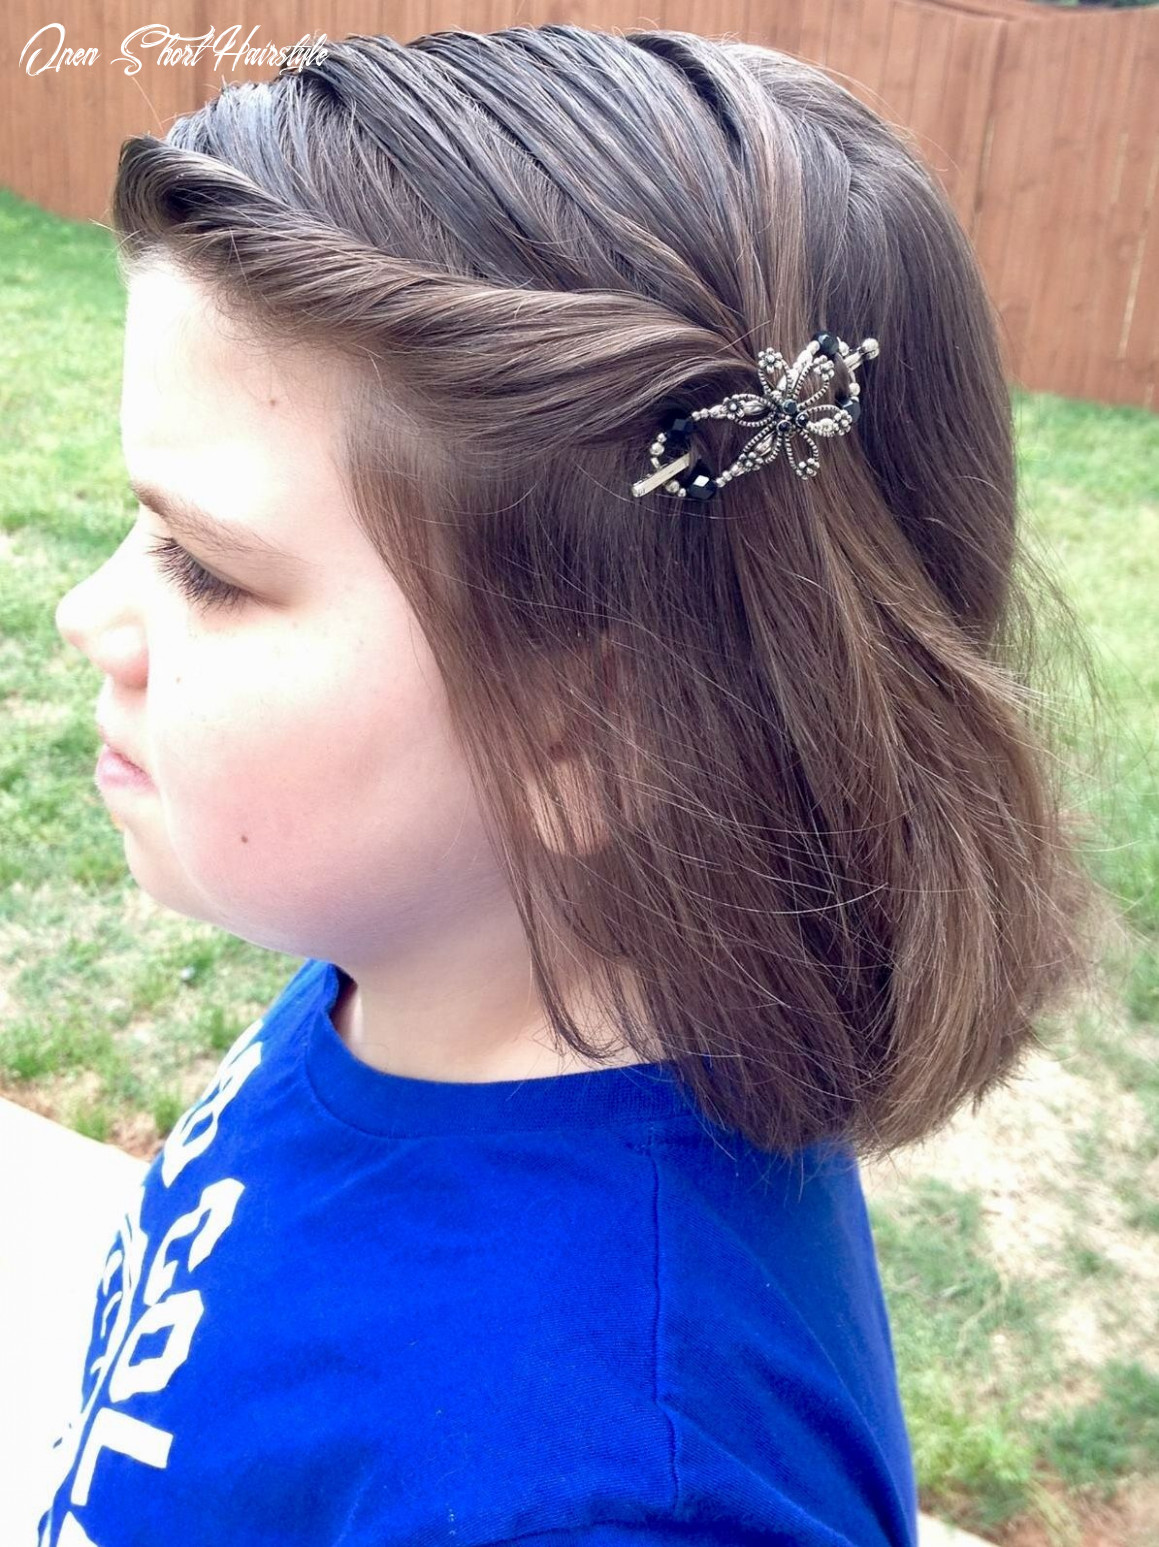 Cute short hair style idea with the open flower flexi clip from